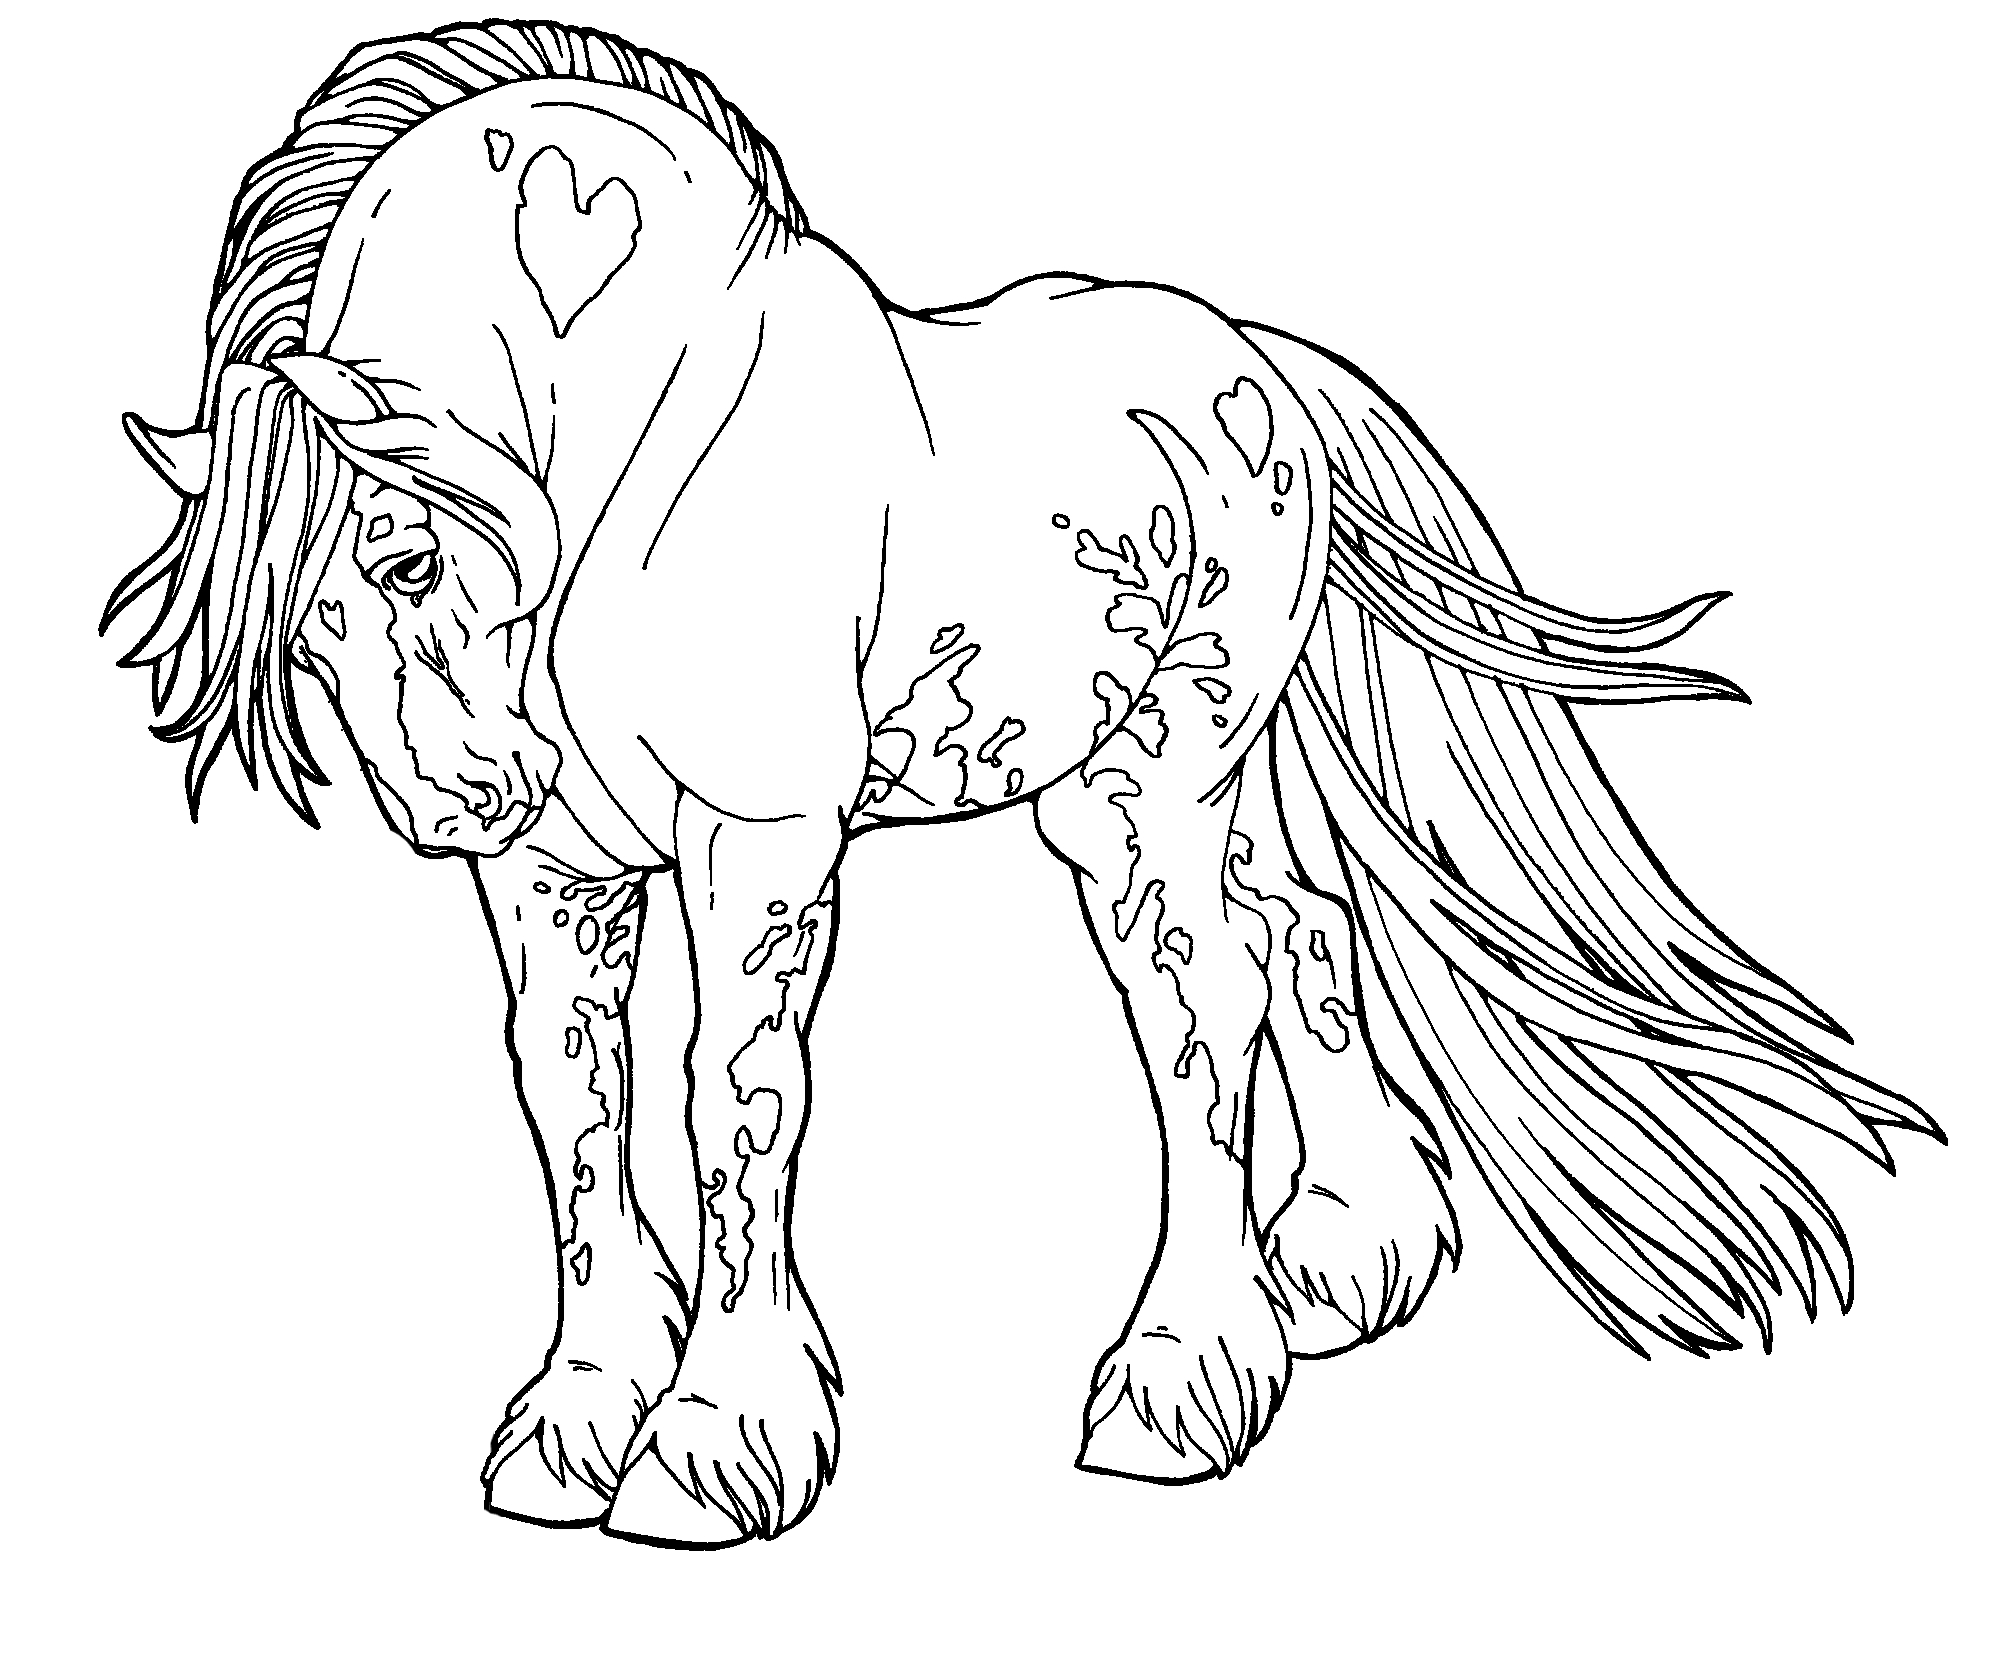 Horse Detailed Coloring Pages Gallery Of Sturdy Coloring Page A Horse Pages Horses R 3353 Unknown Download